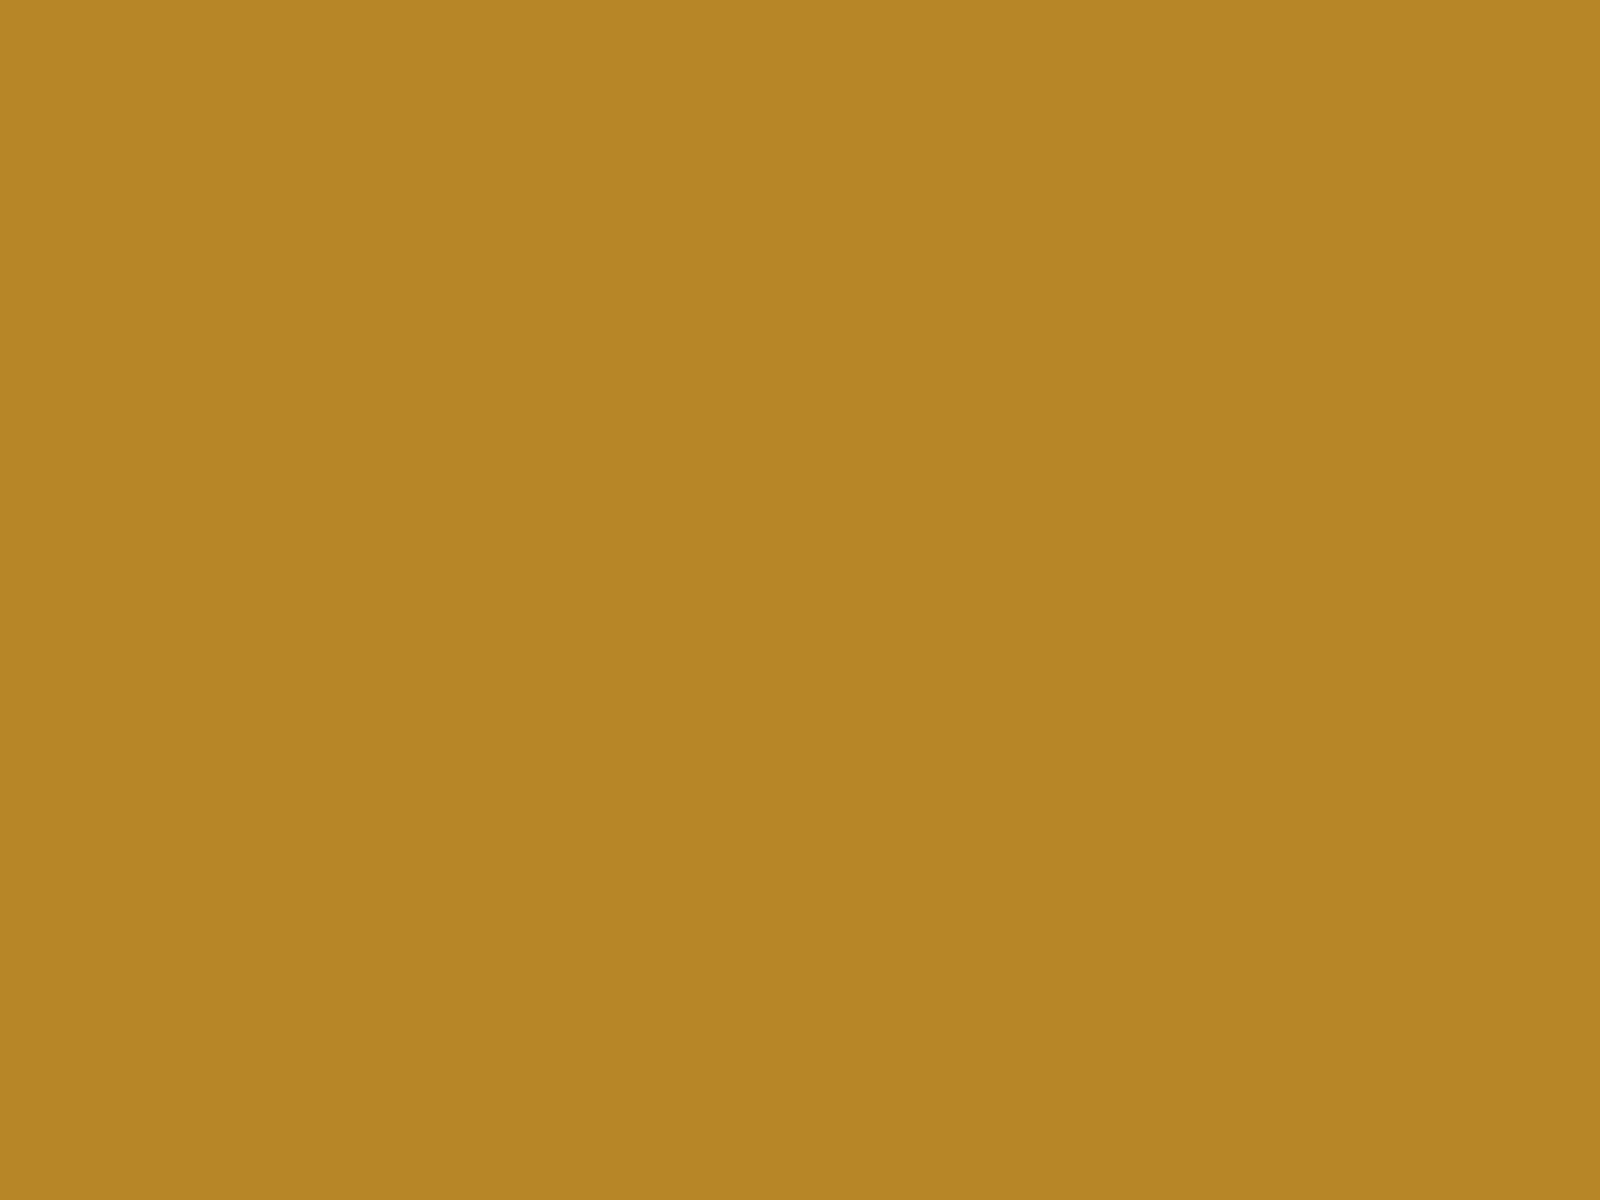 1600x1200 University Of California Gold Solid Color Background